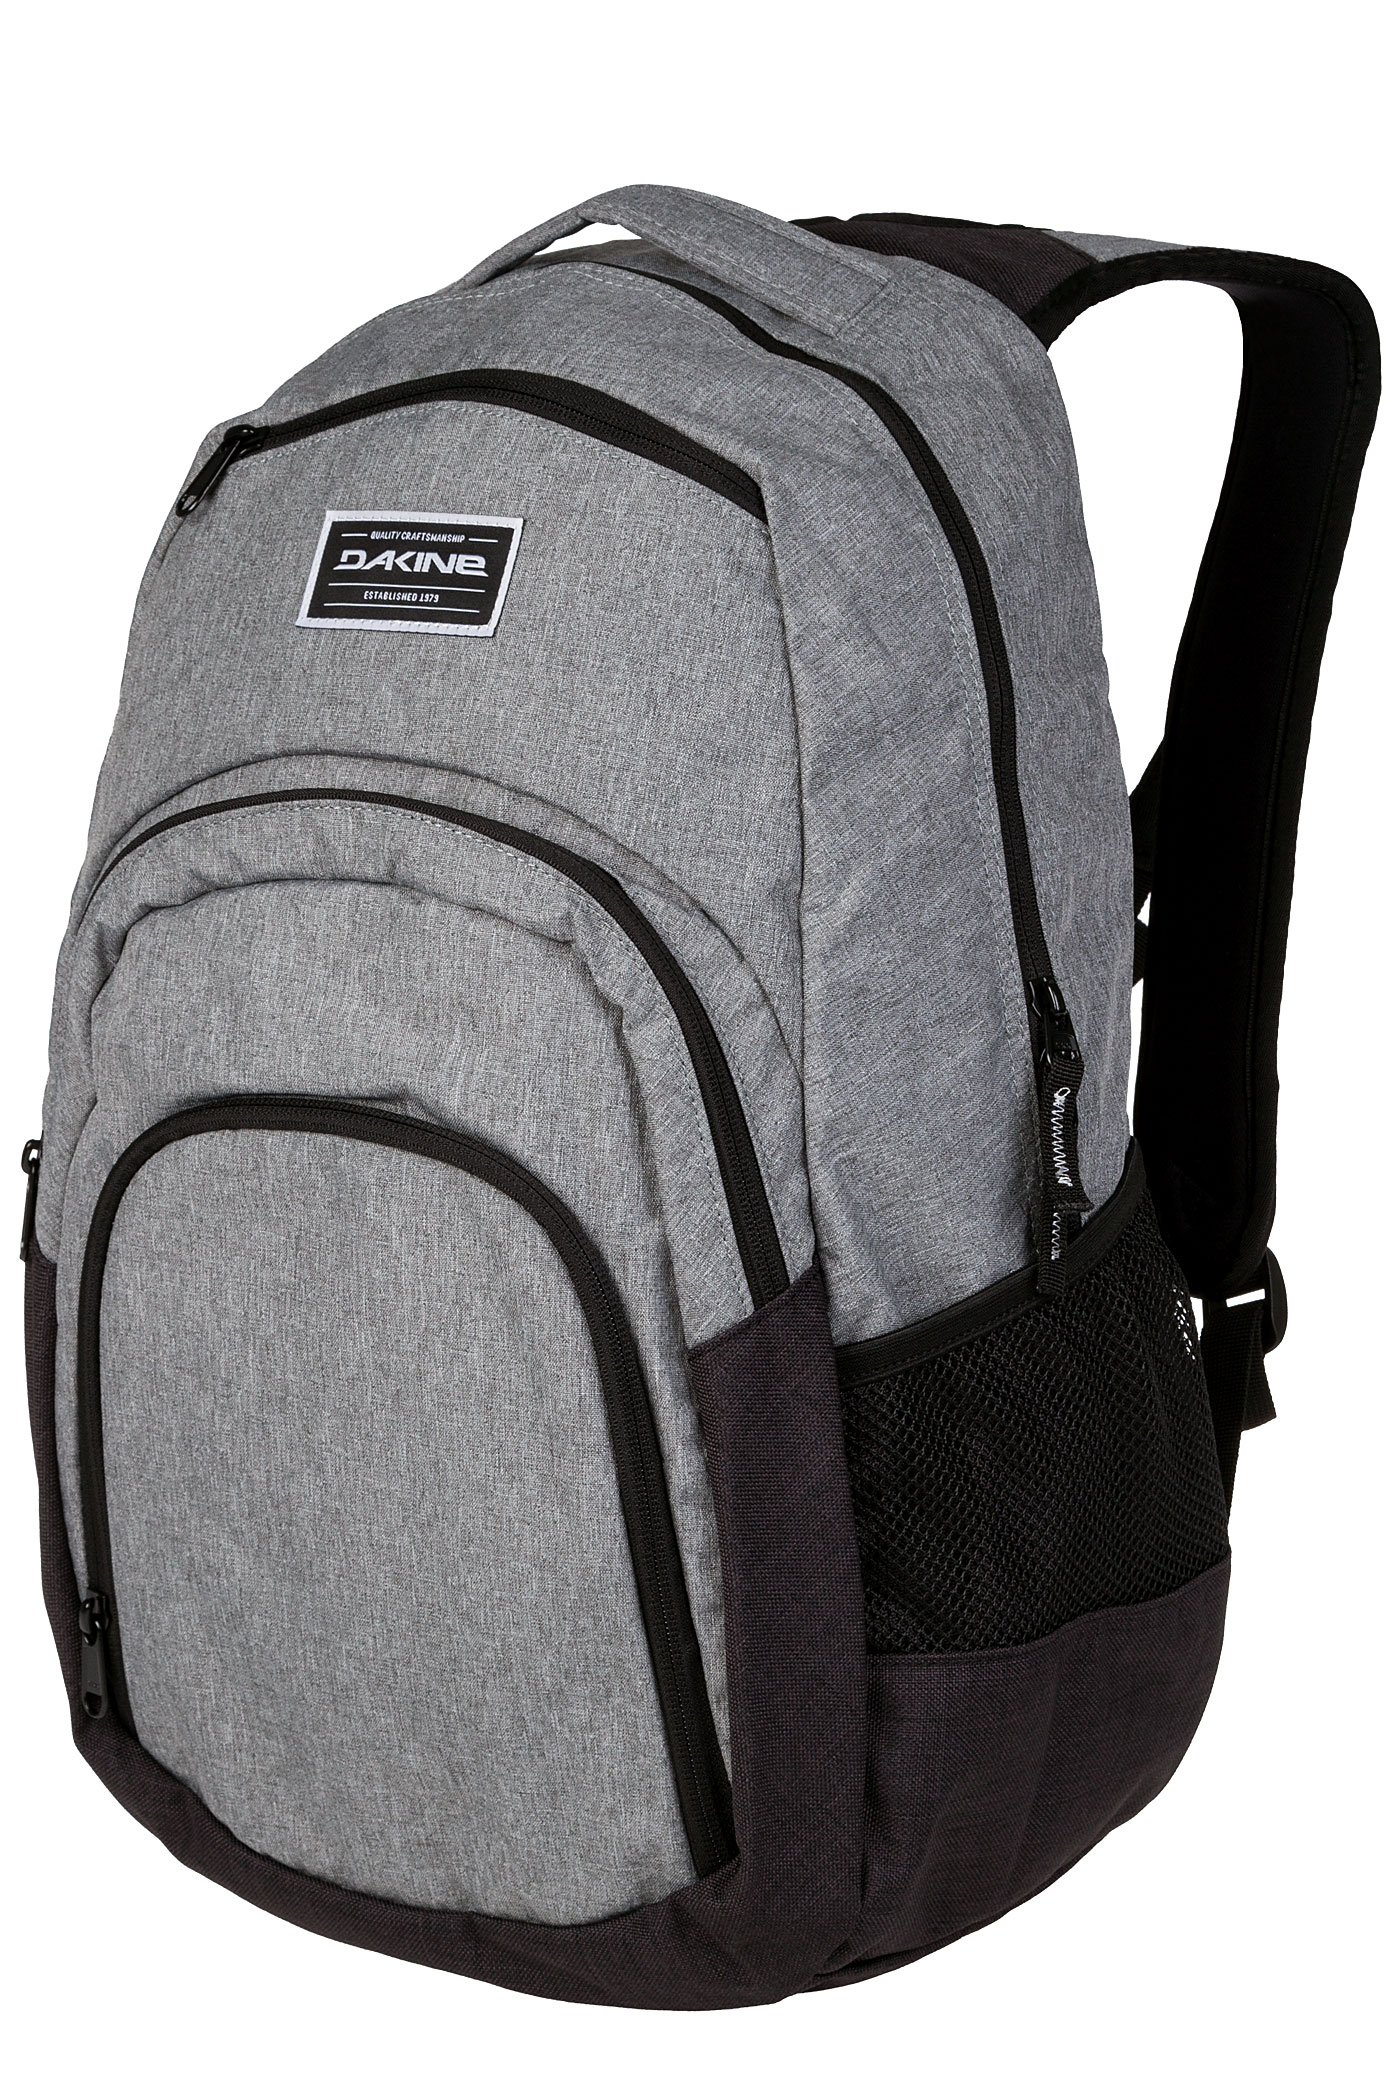 Dakine Campus Backpack 33L (sellwood) buy at skatedeluxe